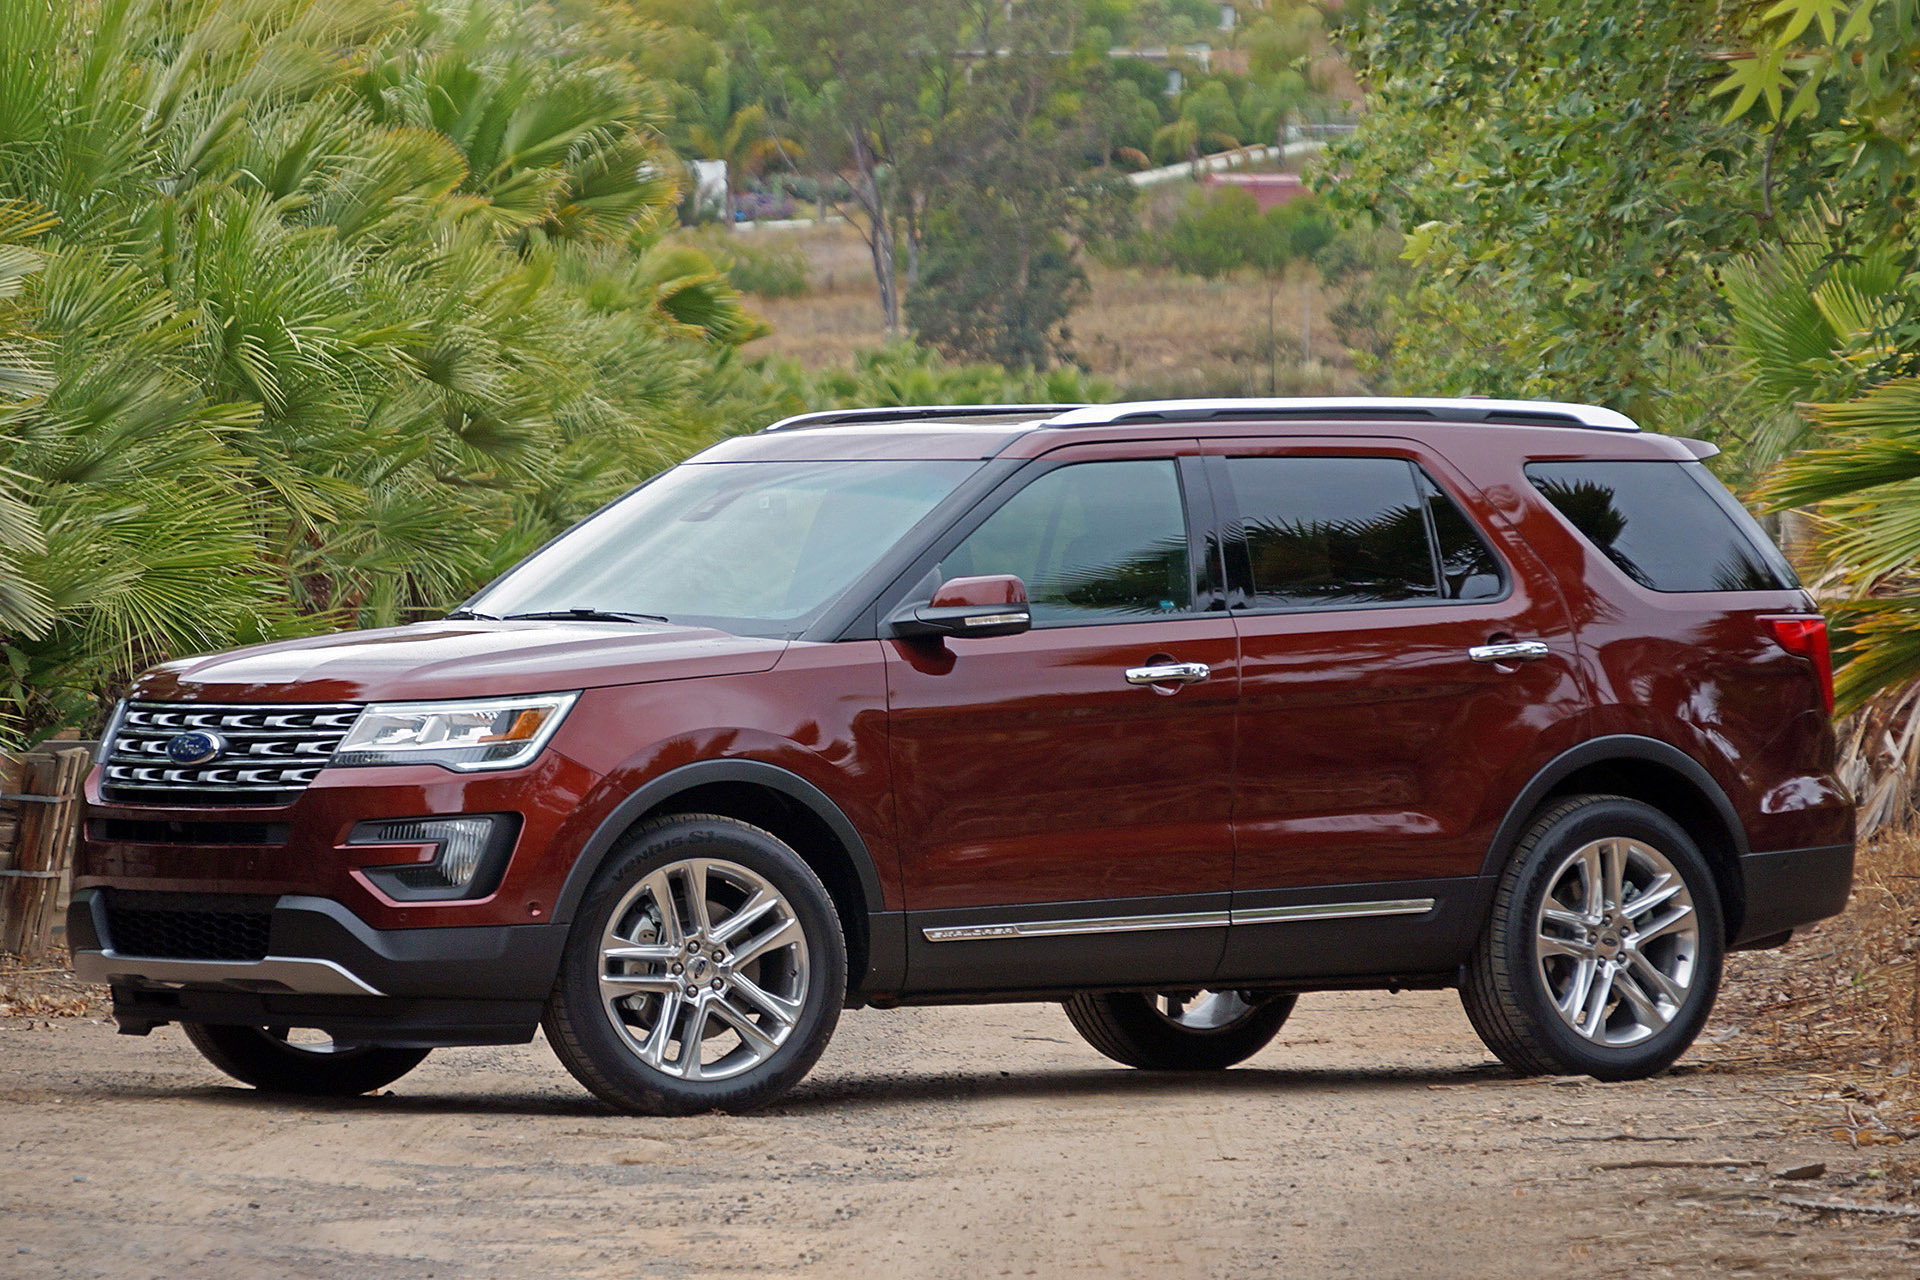 2016 Ford Explorer Towing Capacity >> 2016 Ford Explorer First Drive W Video Autoblog